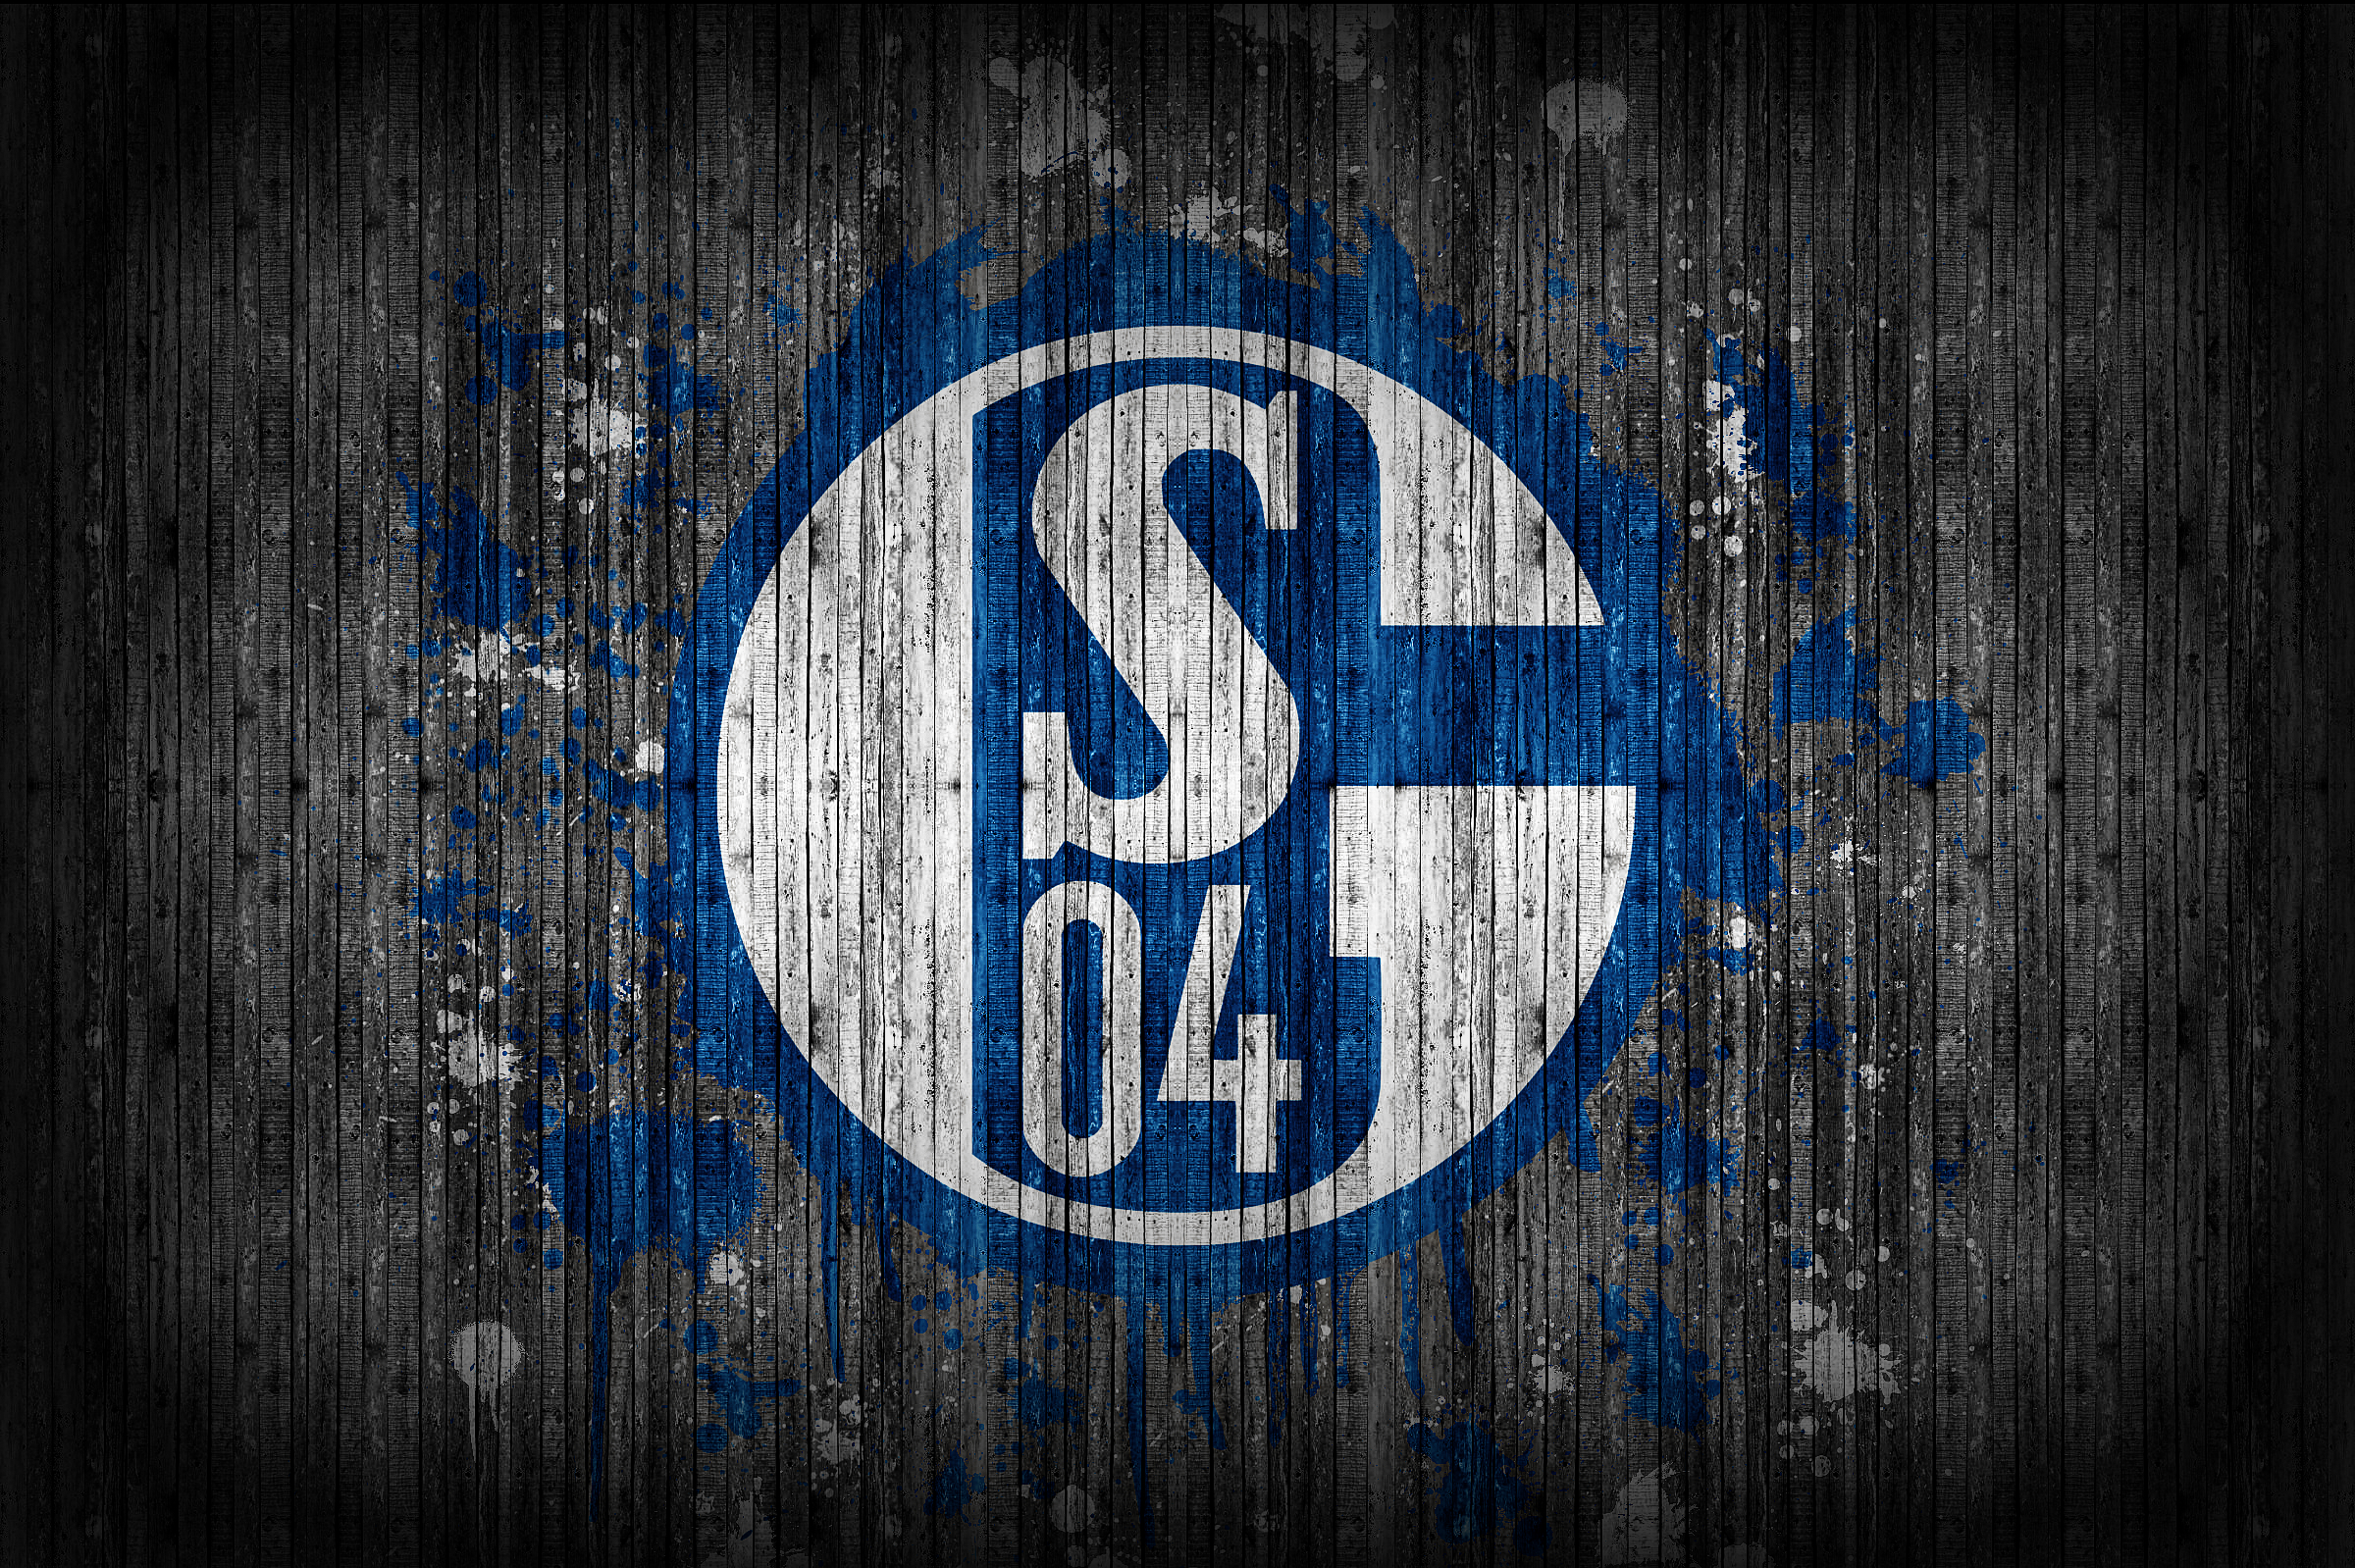 fc schalke 04 wallpaper 1 by 11kaito11 on deviantart. Black Bedroom Furniture Sets. Home Design Ideas